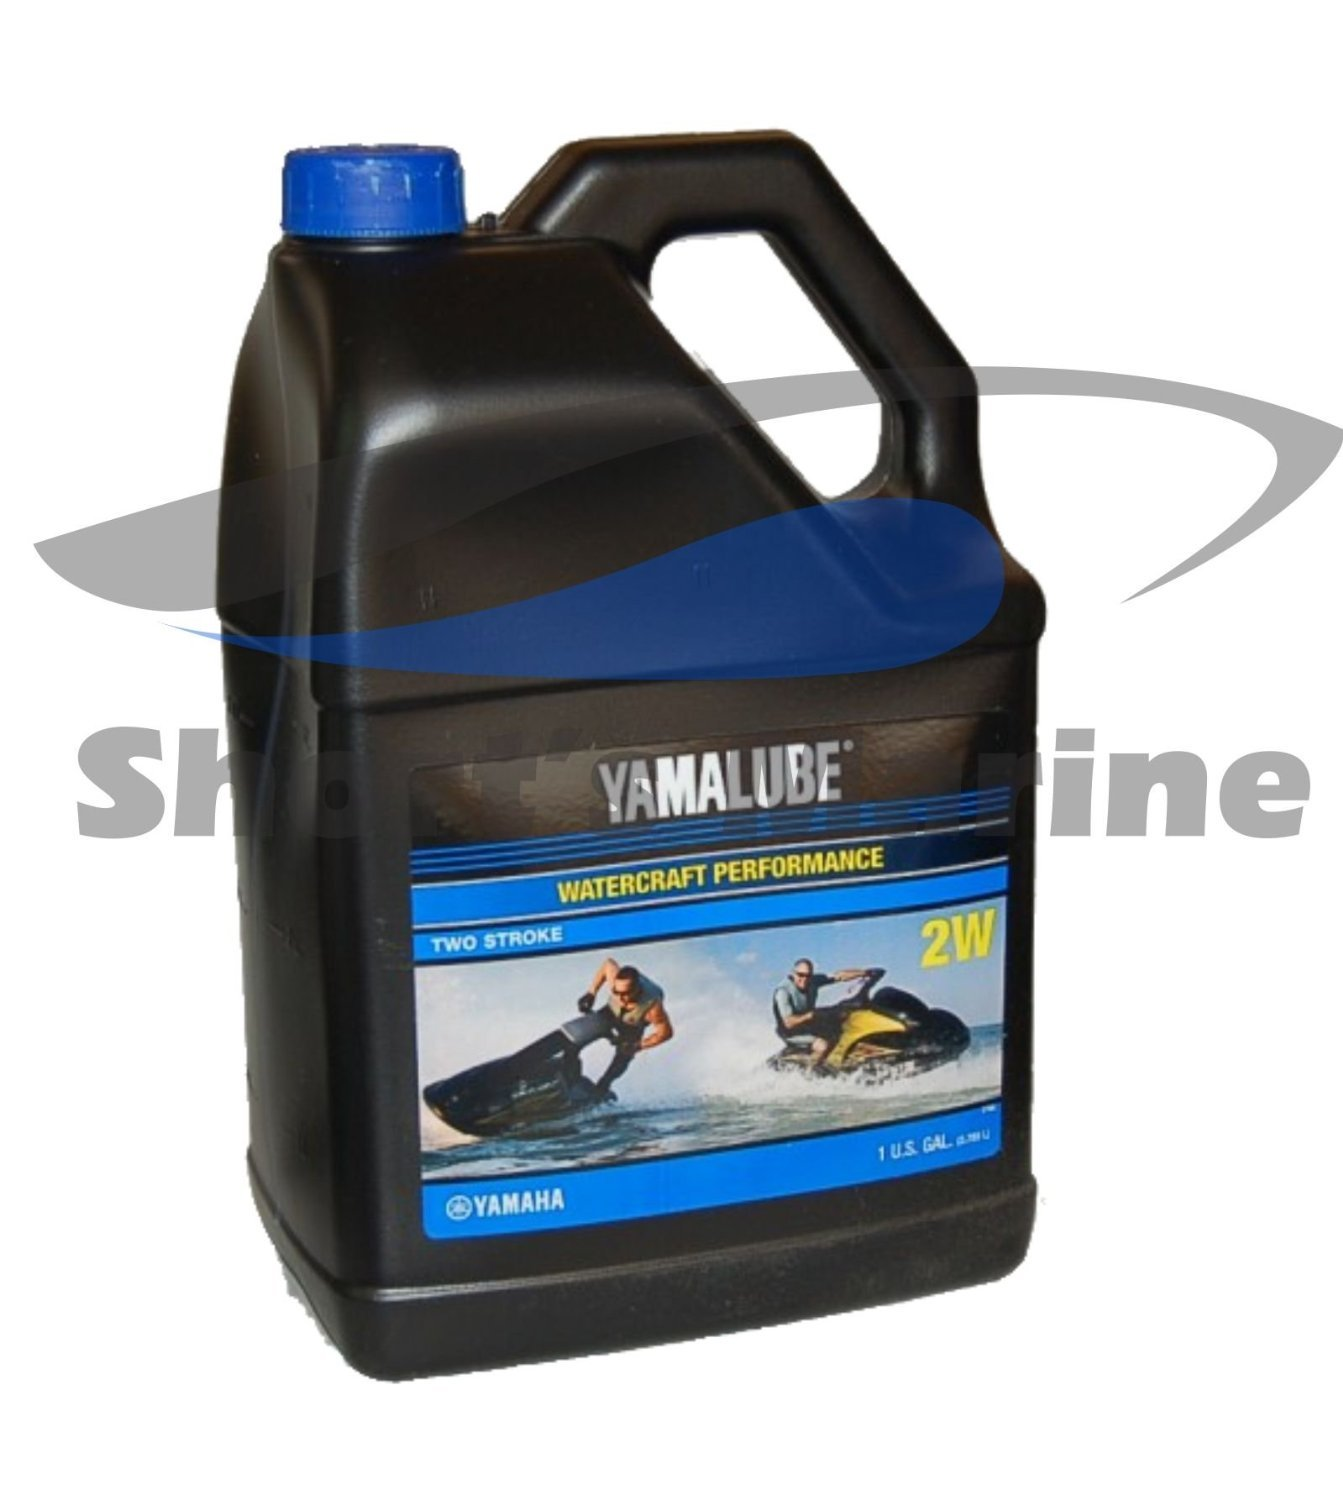 Yamaha LUB-2STRK-2W-04 Yamalube 2W Watercraft 2-stroke oil Waverunner Gallon; New # LUB-2STRK-W1-04 Made by Yamaha Yamaha Marine 4333044651